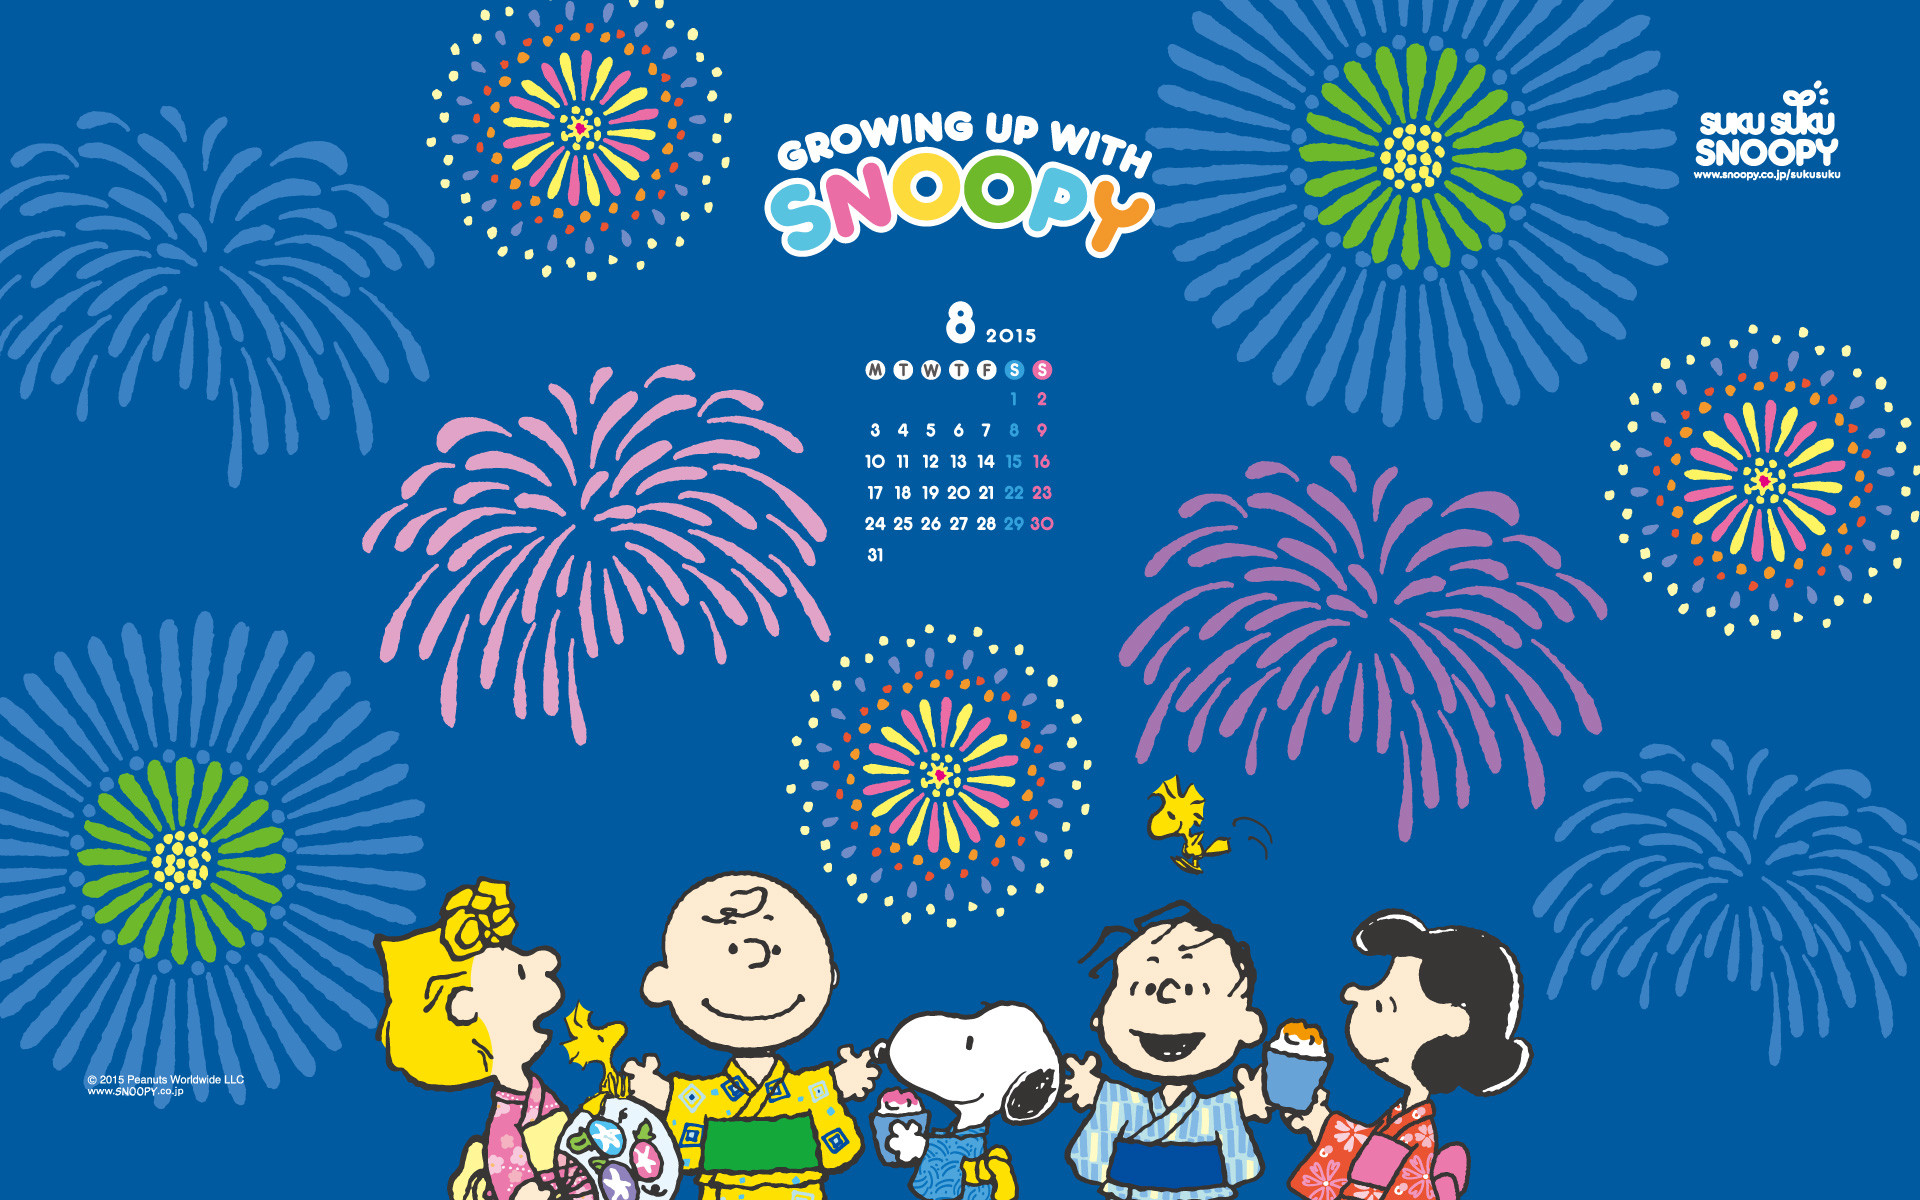 https://www.snoopy.co.jp/sukusuku/images/